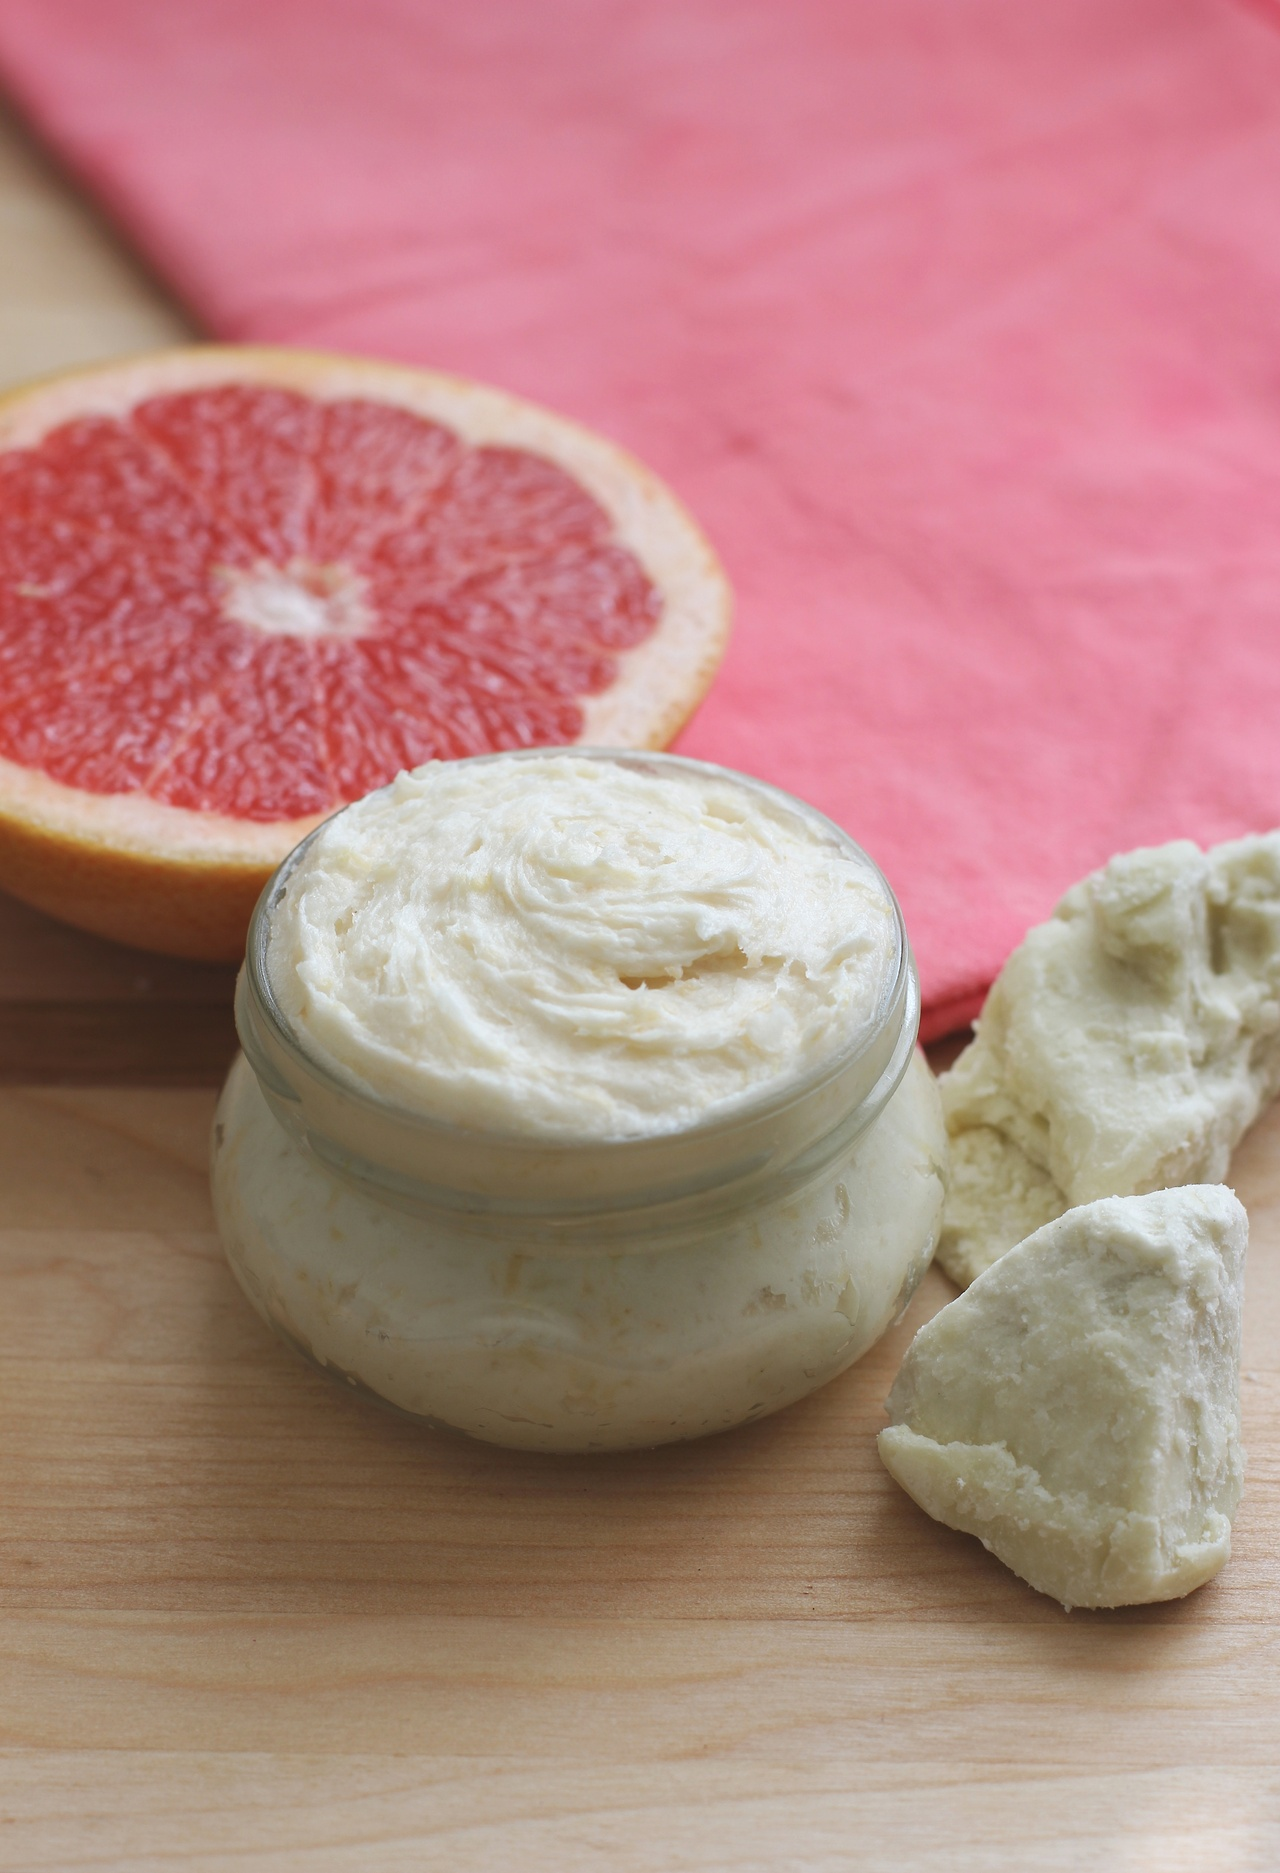 10 DIY Lotion Bars, Balms and Body Butters for Silky-Soft Skin